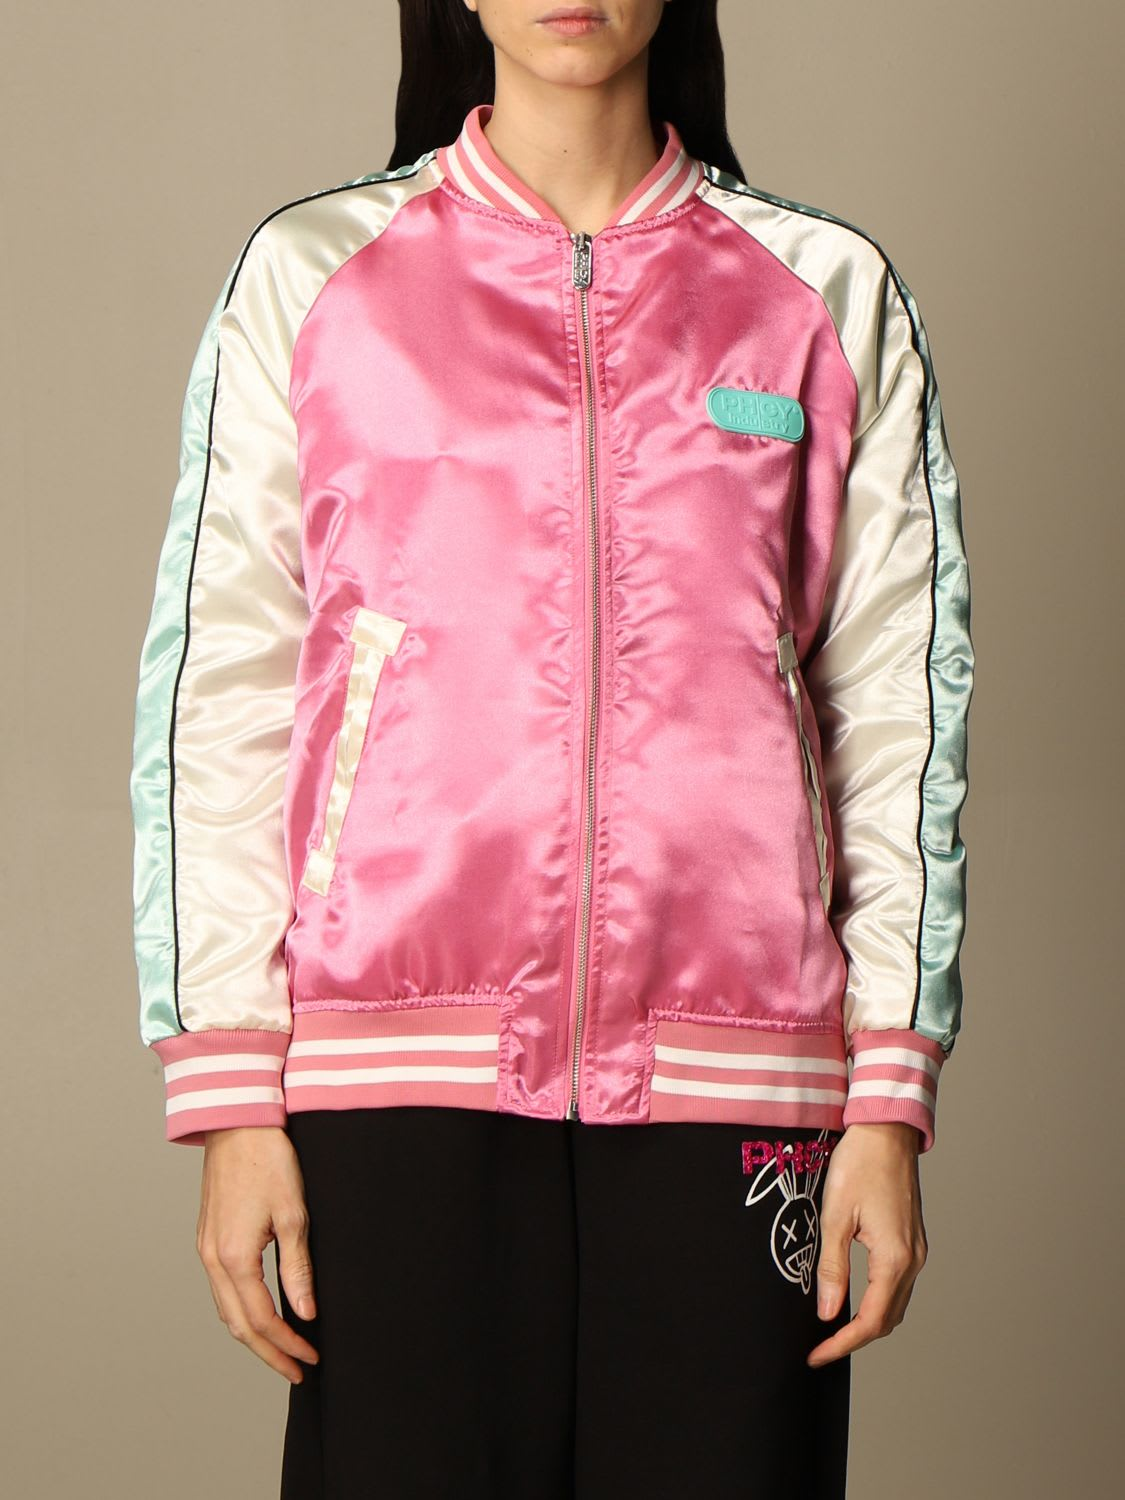 Pharmacy Industry Jacket Pharmacy Industry Bomber Jacket With Mouth Patch